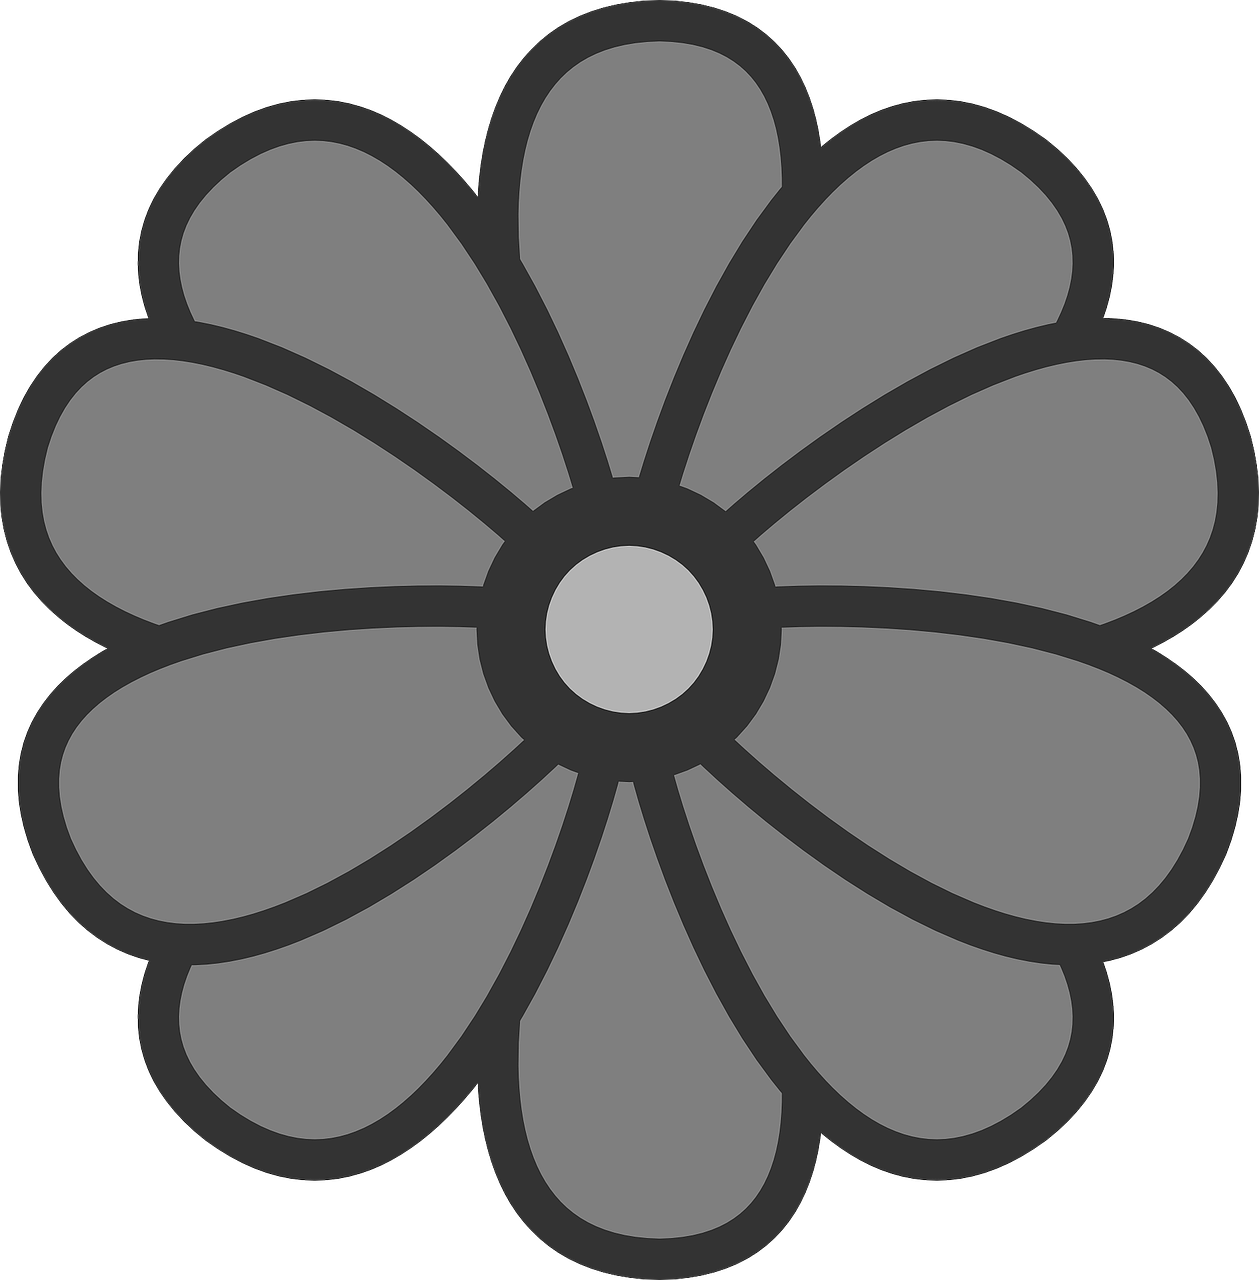 flower symbol icon free photo